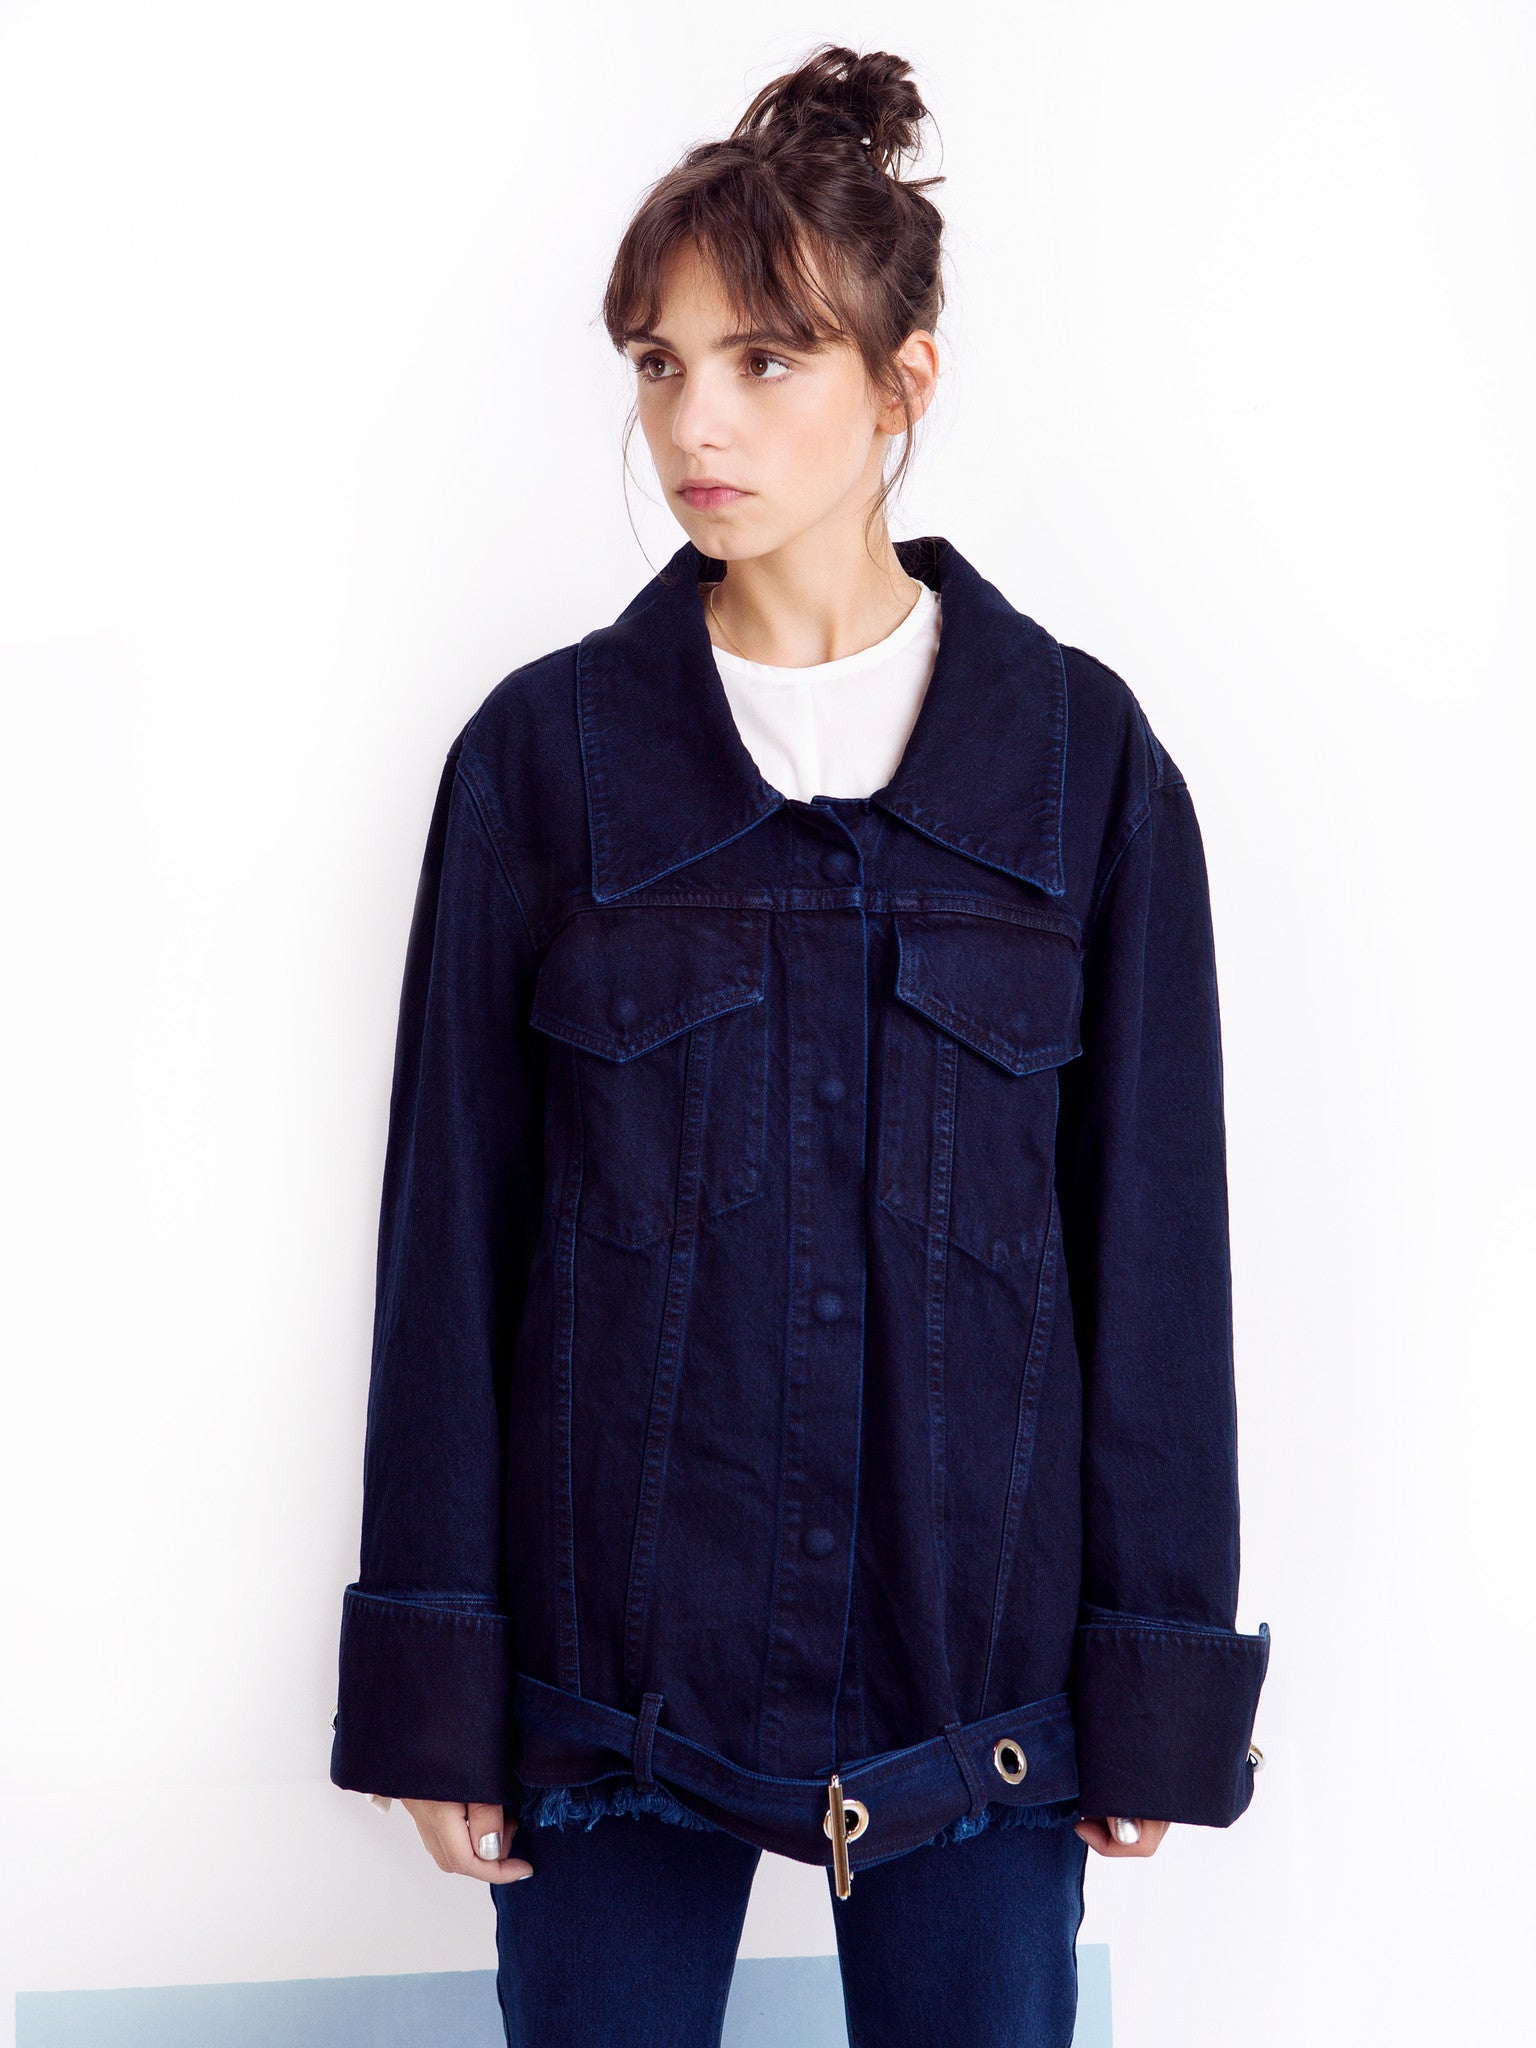 Marques'Almeida Unisex Denim Jacket Front